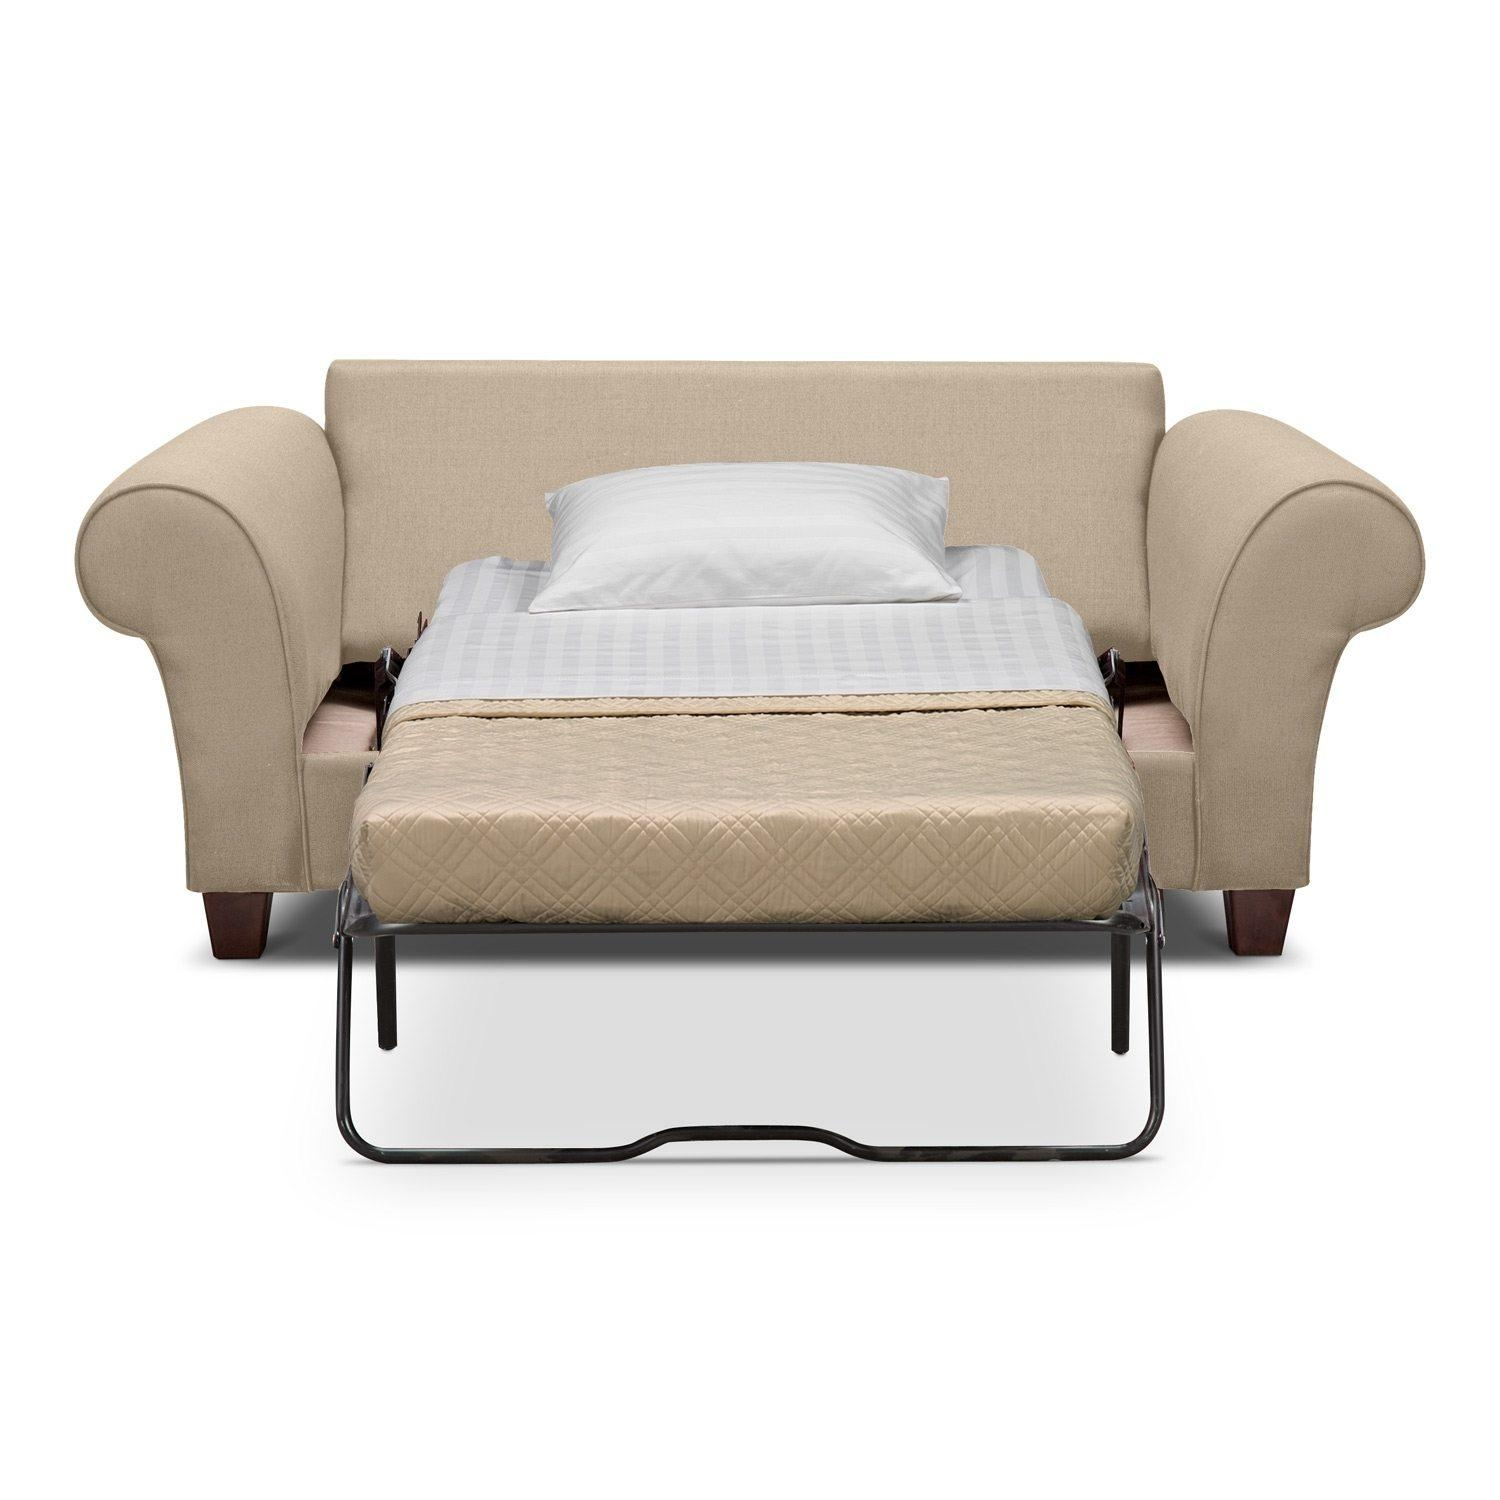 Sofas : Magnificent Microfiber Sofa Loveseat Sofa Bed Convertible With Loveseat Twin Sleeper Sofas (Image 16 of 20)